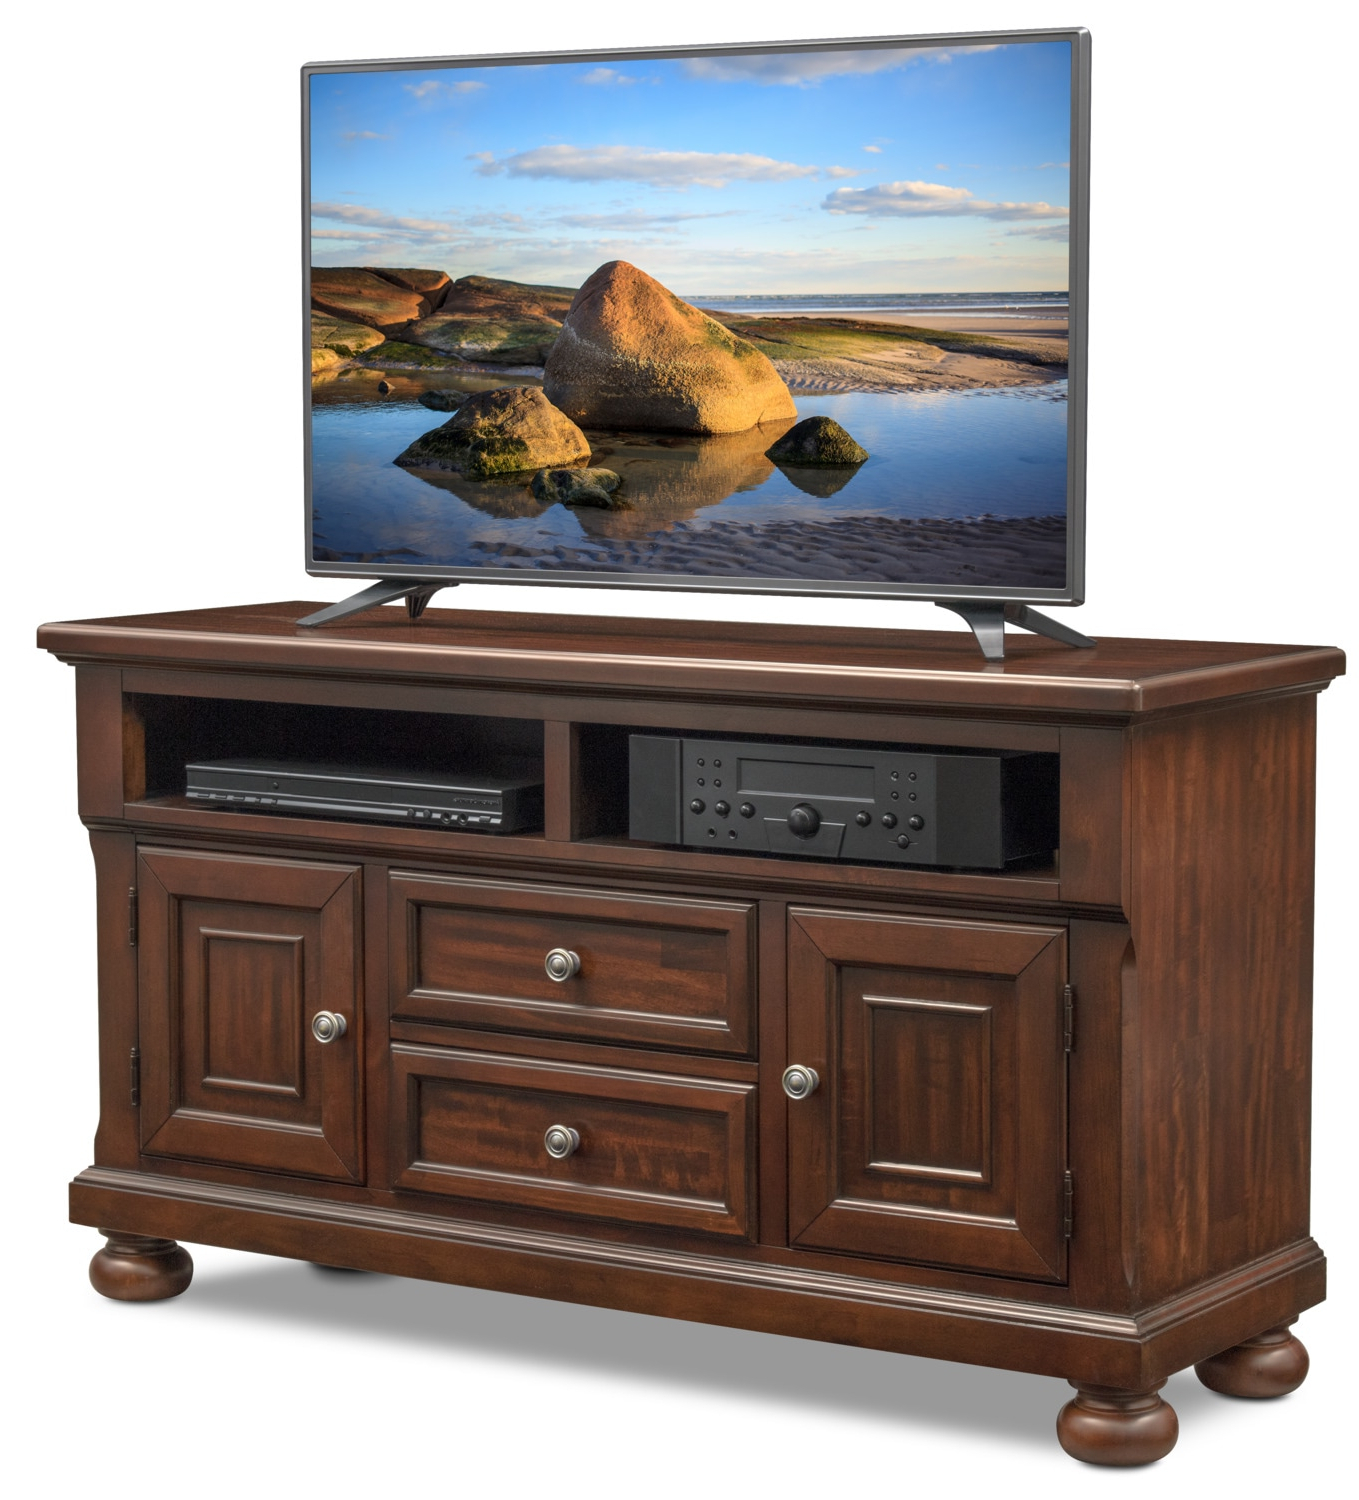 "Cherry Wood Tv Stands Regarding Famous Hanover 52"" Tv Stand – Cherry (View 5 of 20)"